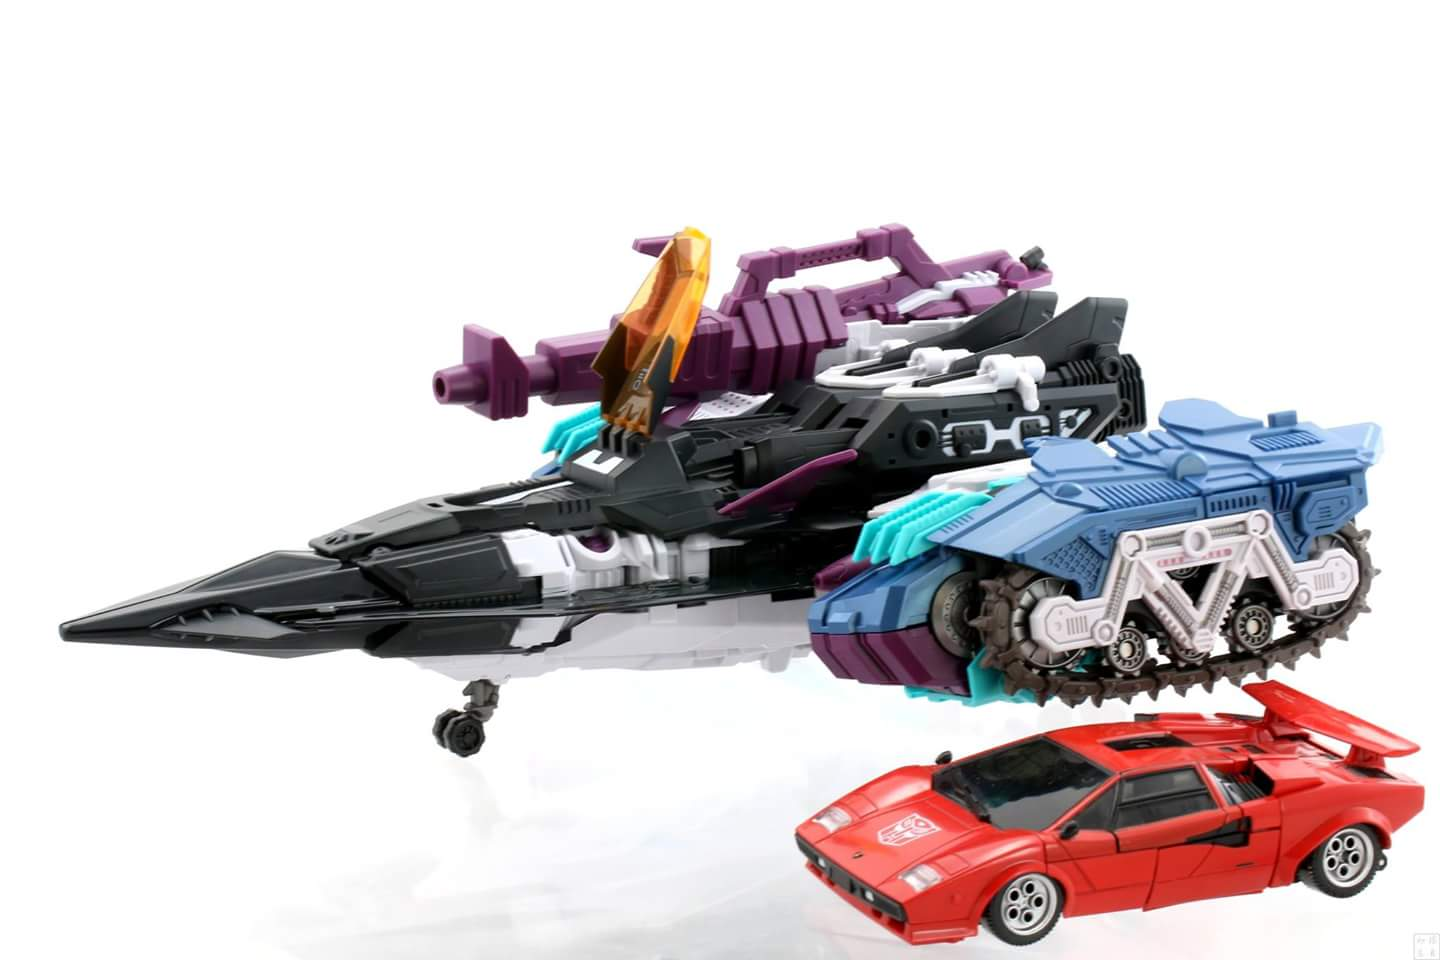 [Mastermind Creations] Produit Tiers - R-17 Carnifex - aka Overlord (TF Masterforce) - Page 3 CnOJM7Xq